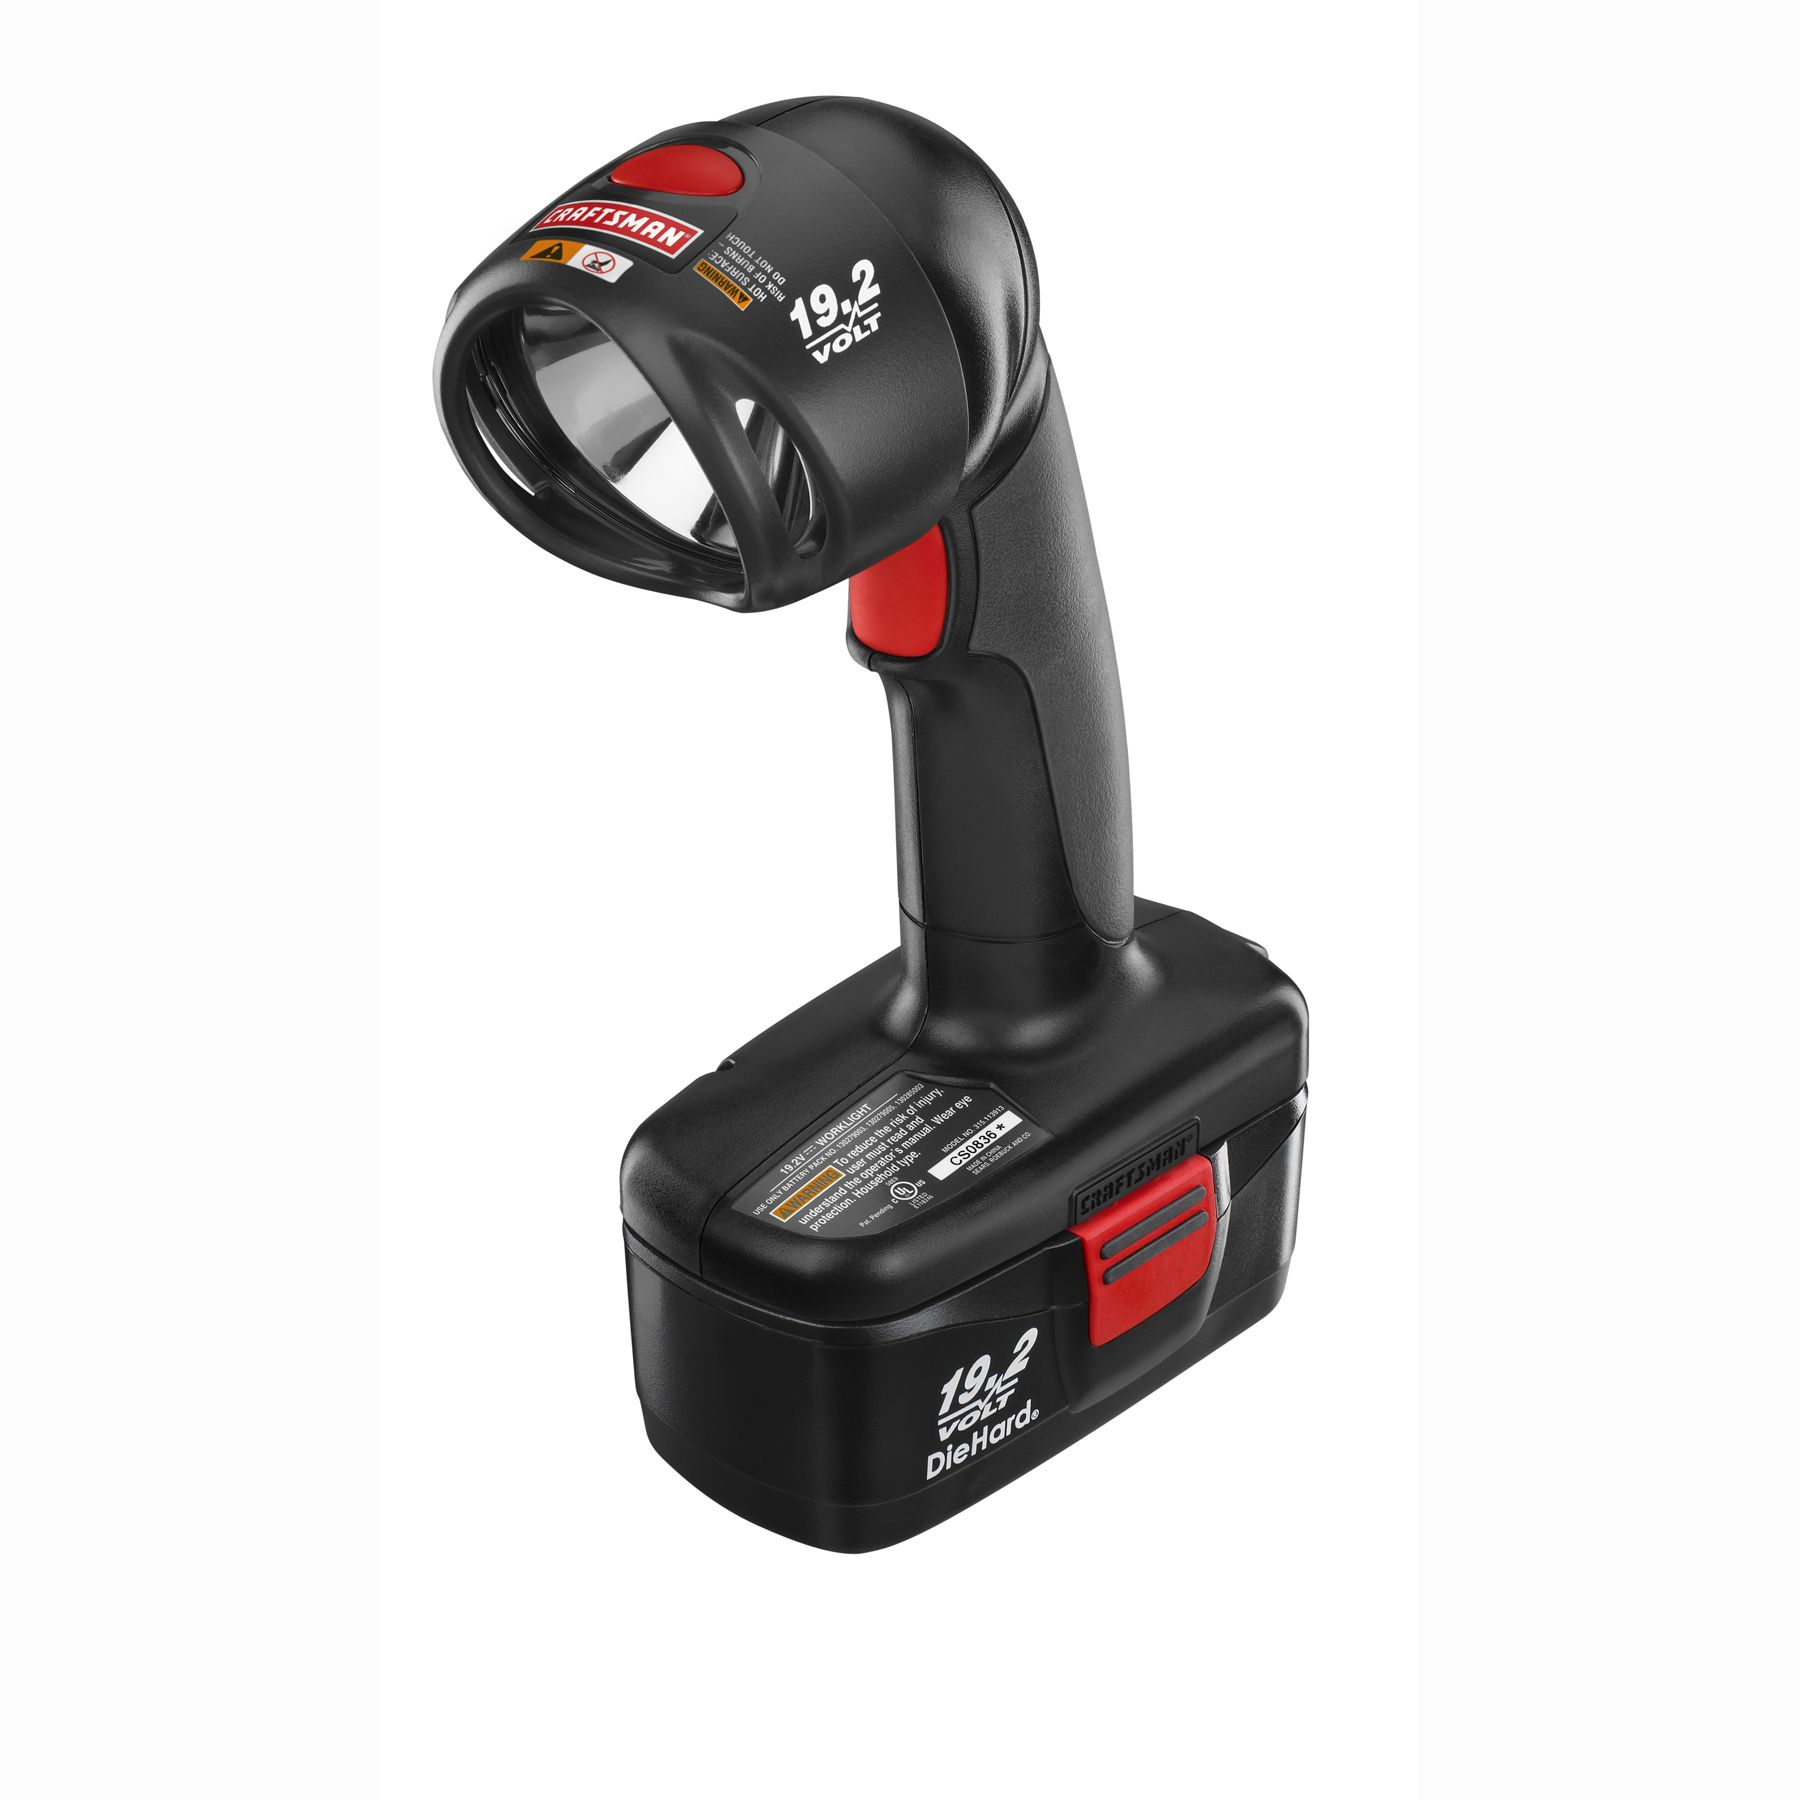 "Craftsman C3 19.2-Volt 1/2"" Drill/Driver and Work light 17560"